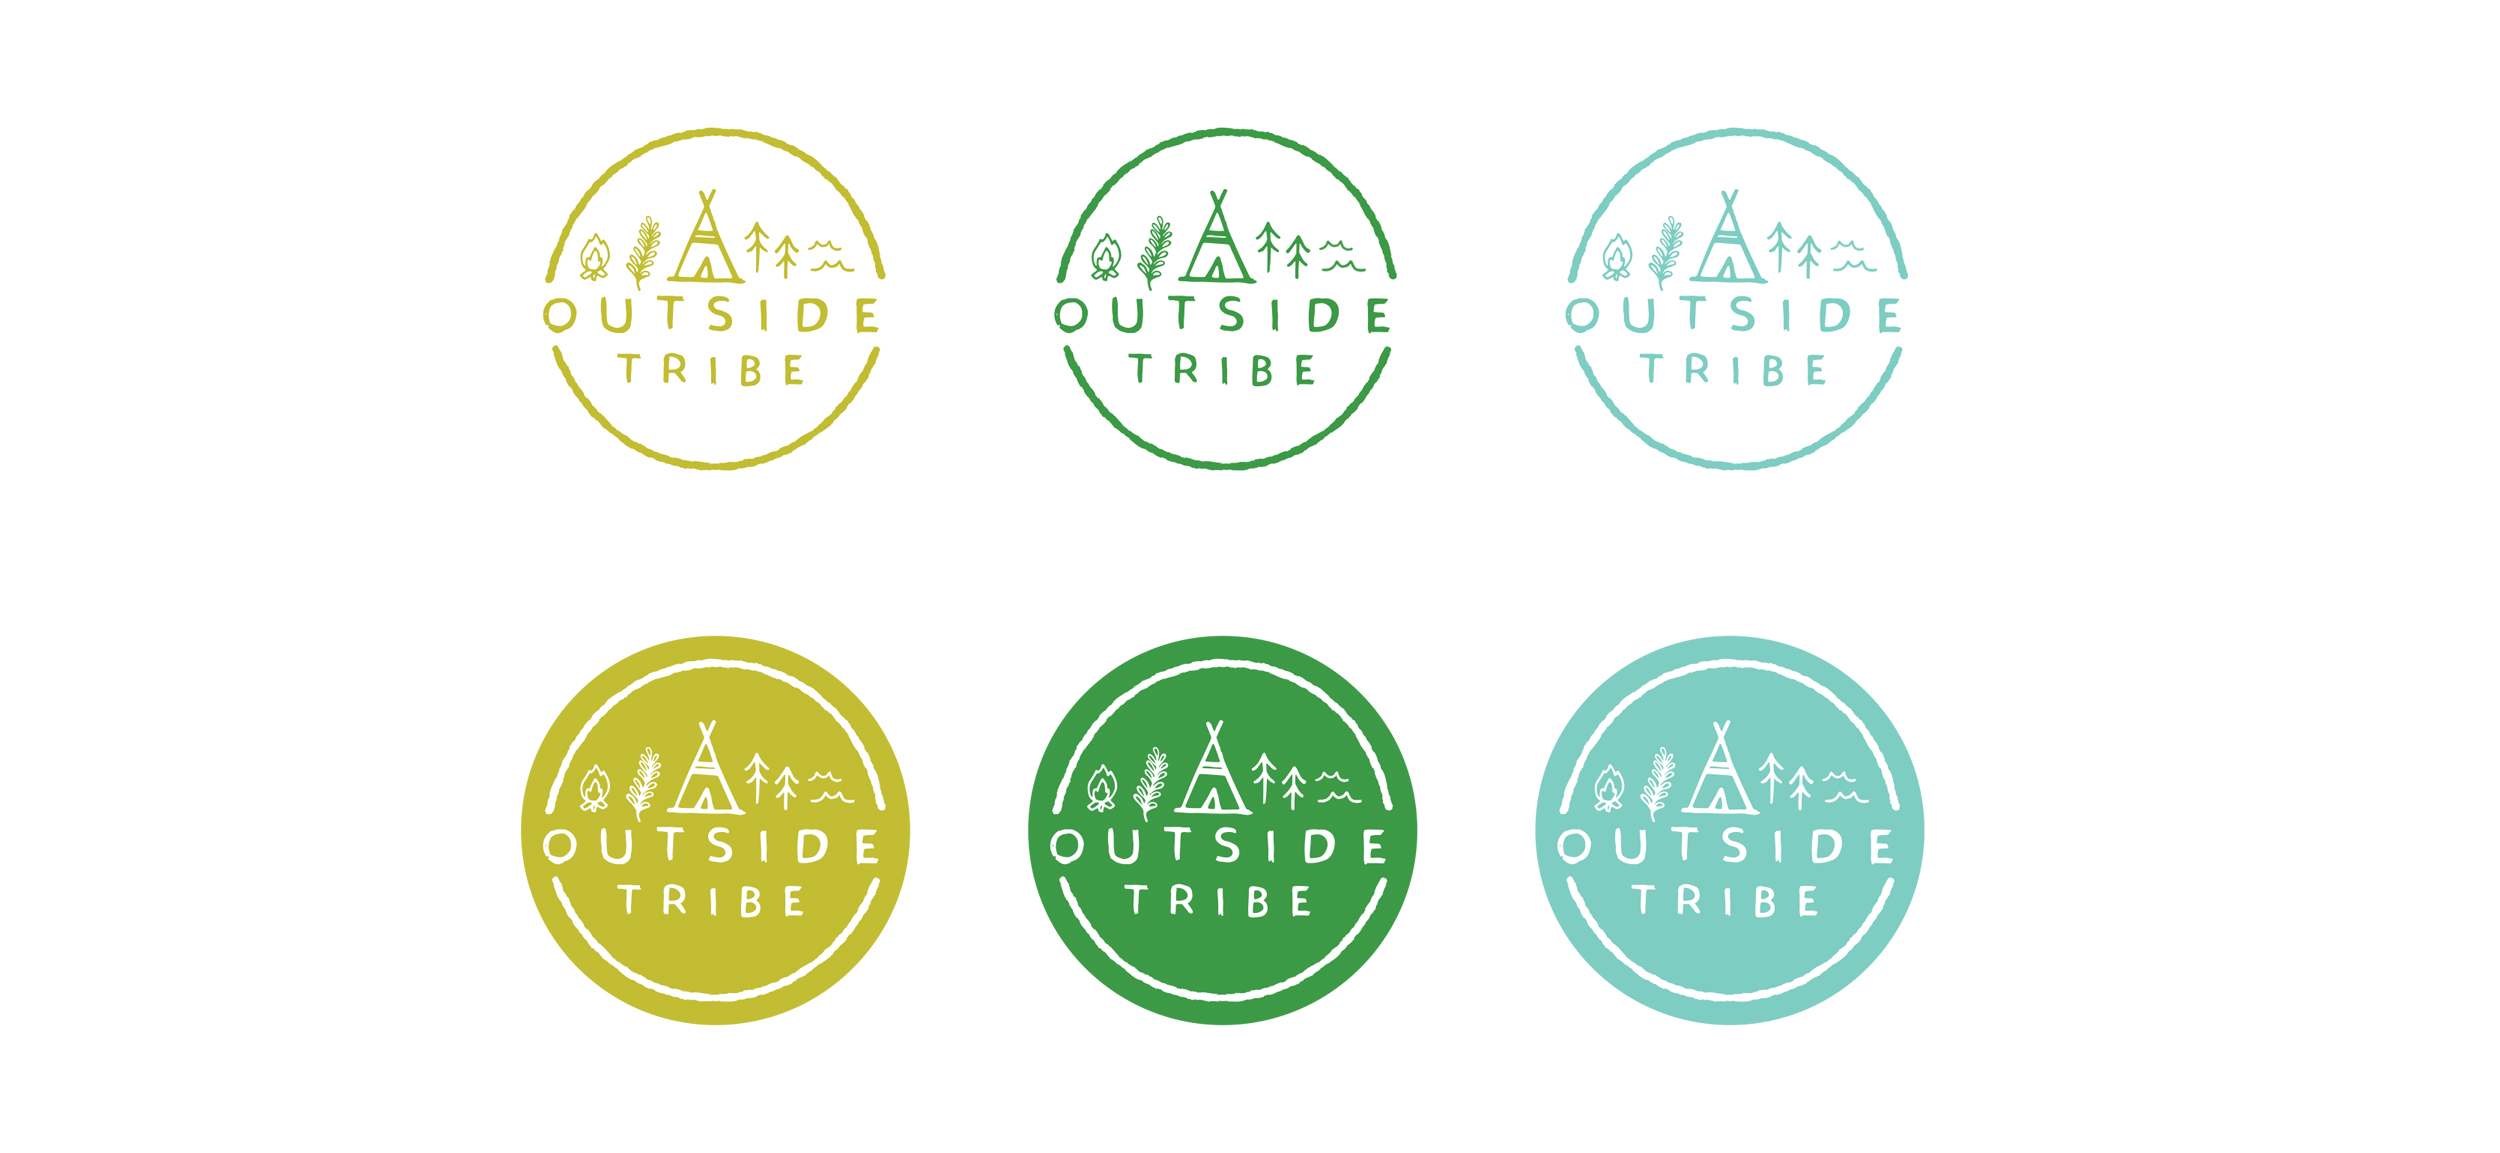 Outside-Tribe-Logos